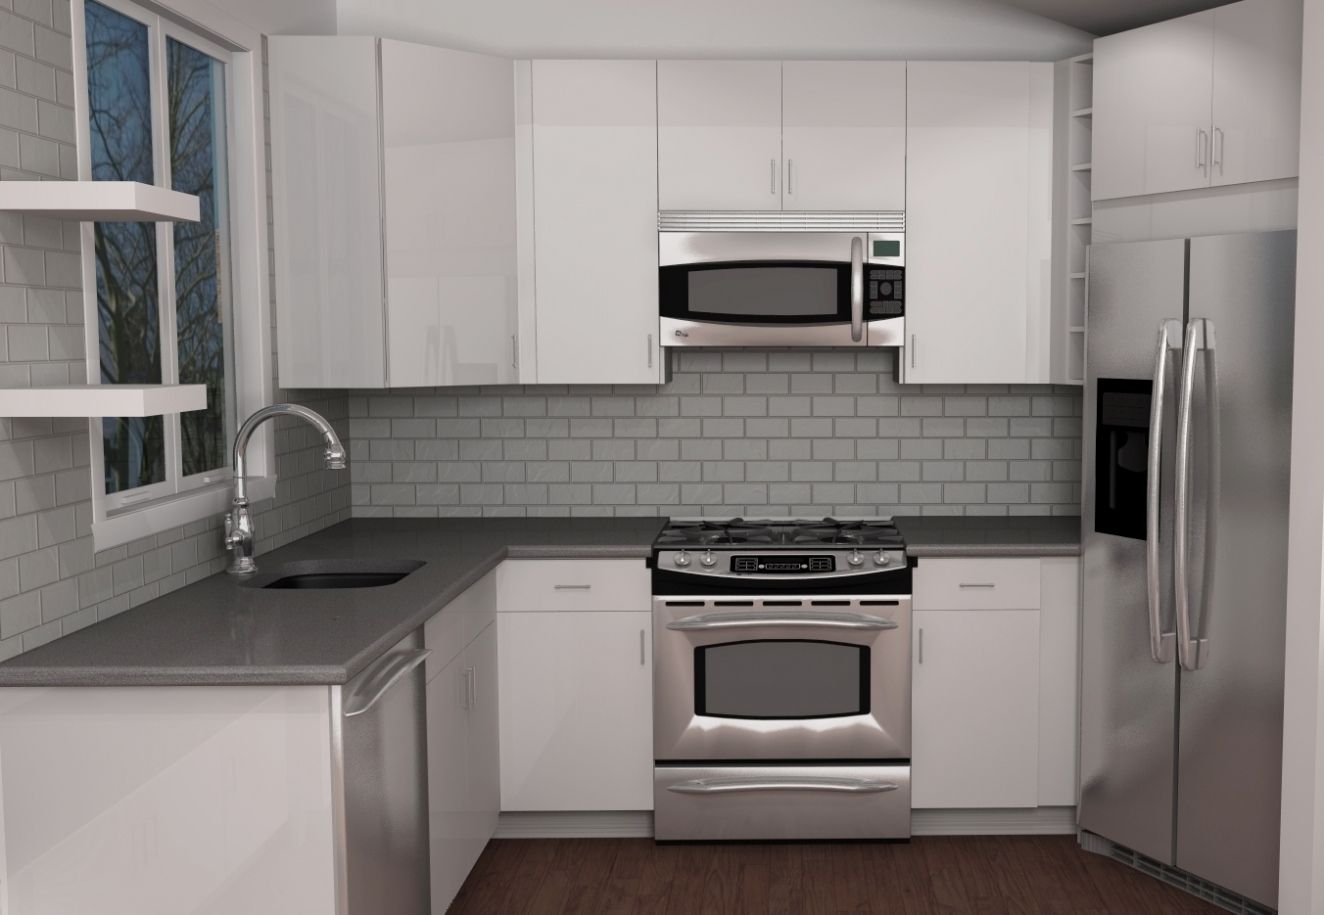 Beau How To Get More Counter Space In A Small Kitchen   Interior Paint Color  Schemes Check